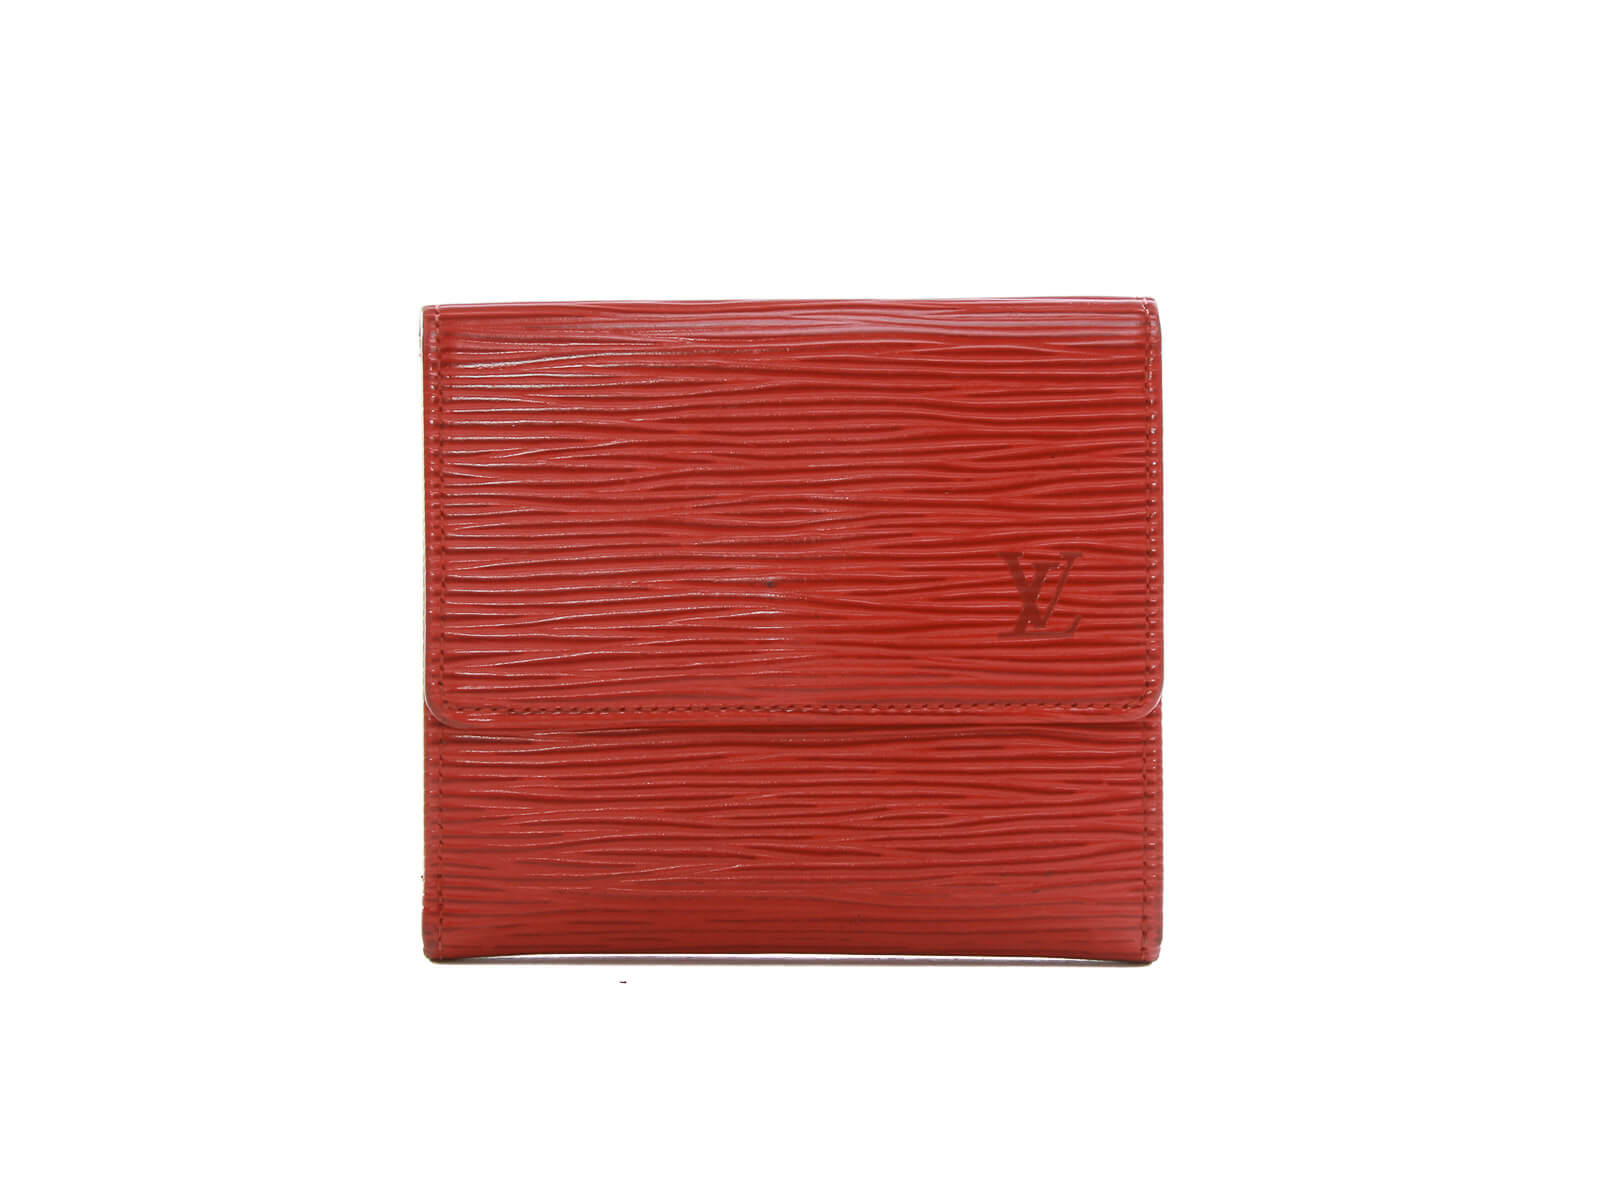 Authentic louis vuitton porte-monnaie billets